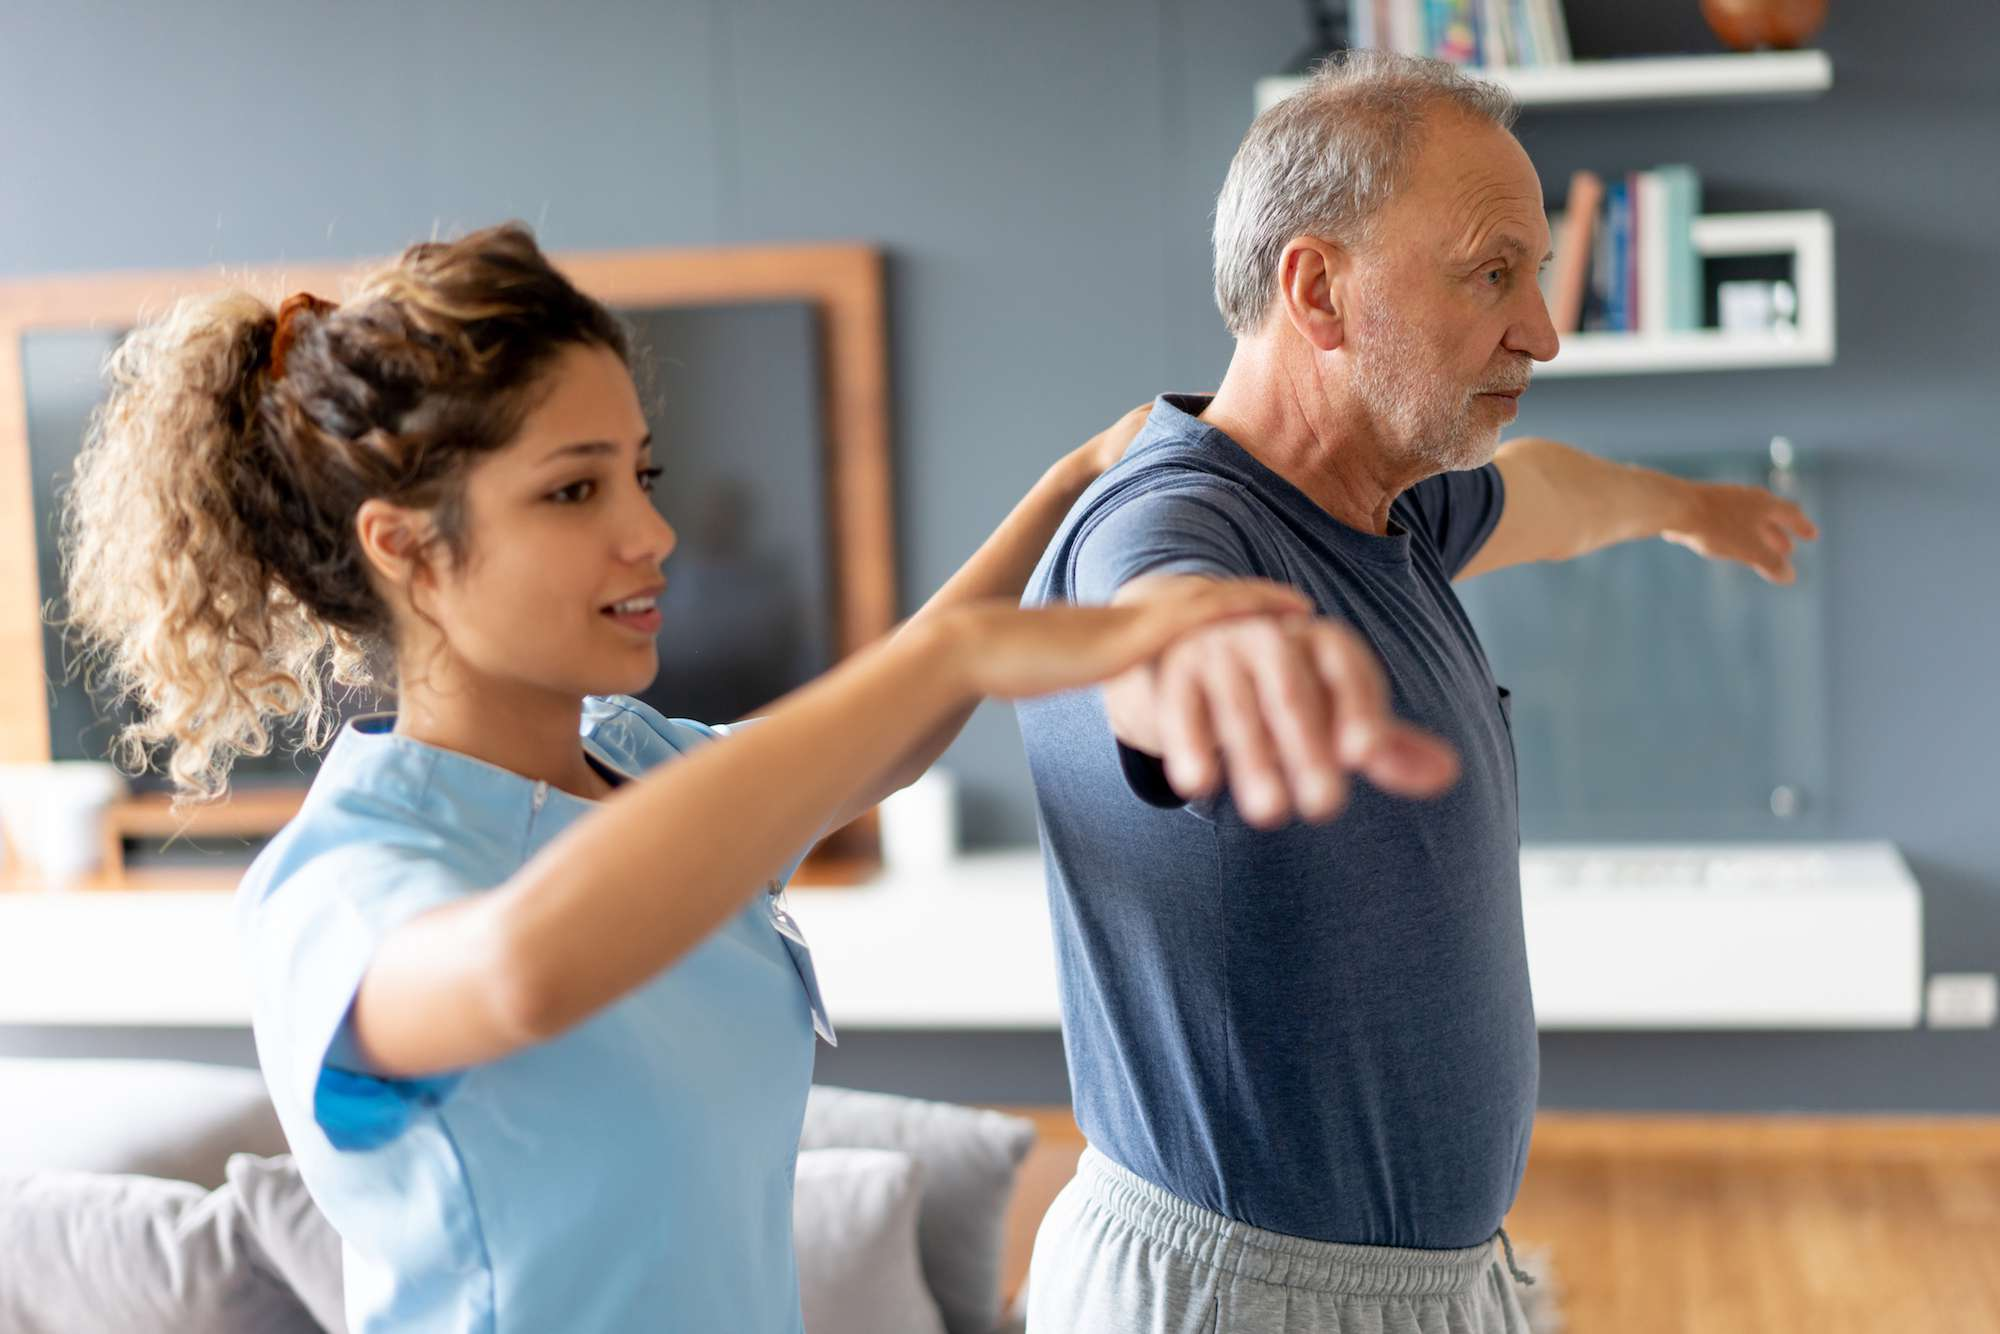 Physical therapist leading older man through shoulder exercise